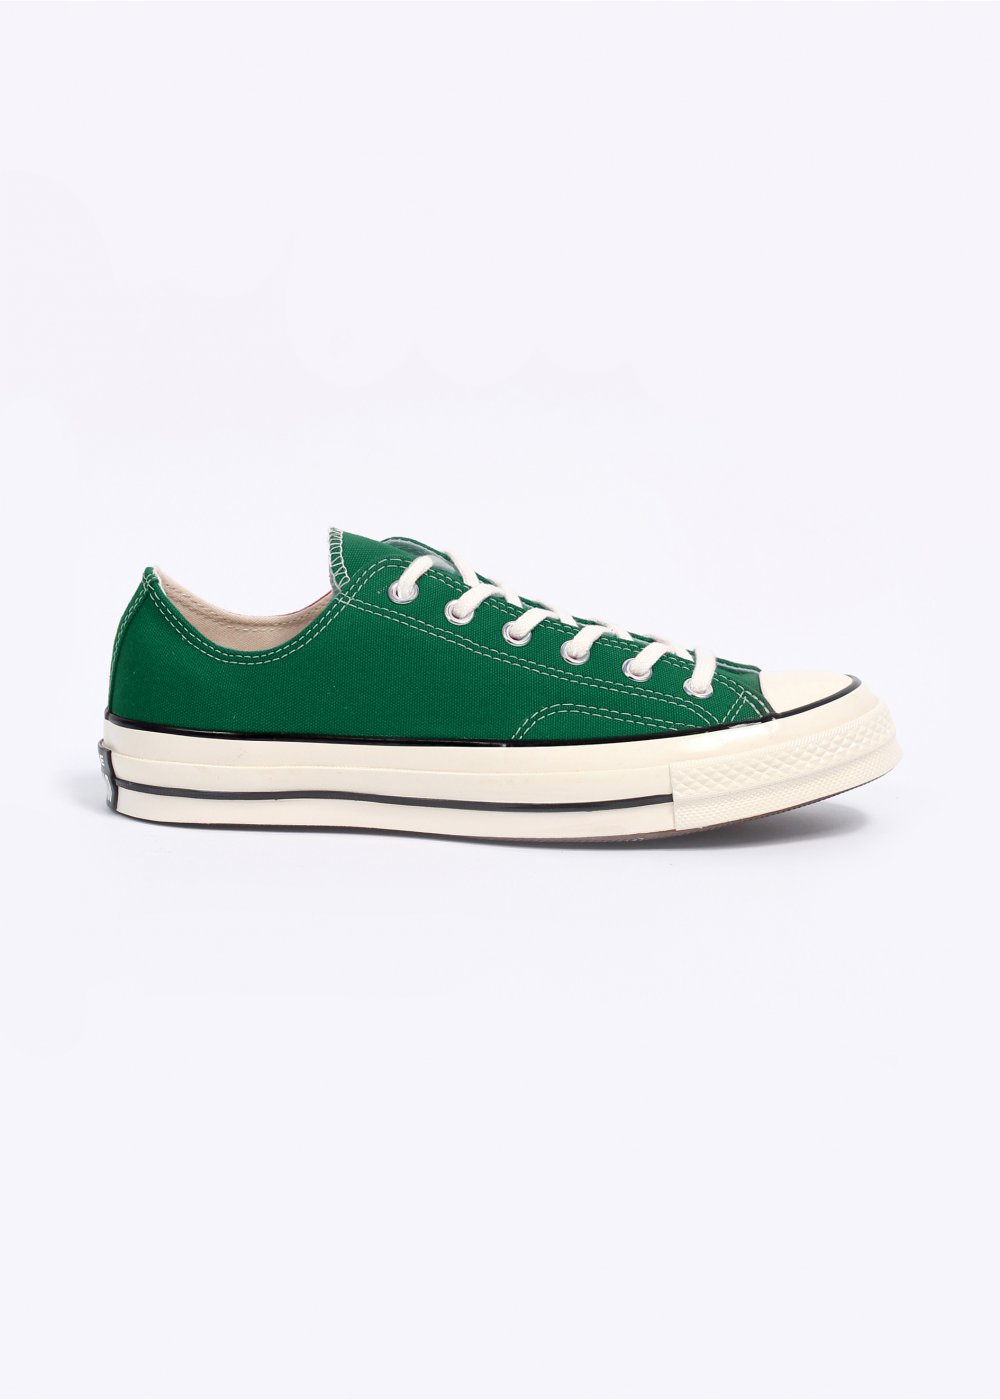 8735af3c2f62 Converse Chuck Taylor 70 s Low - Amazon Green